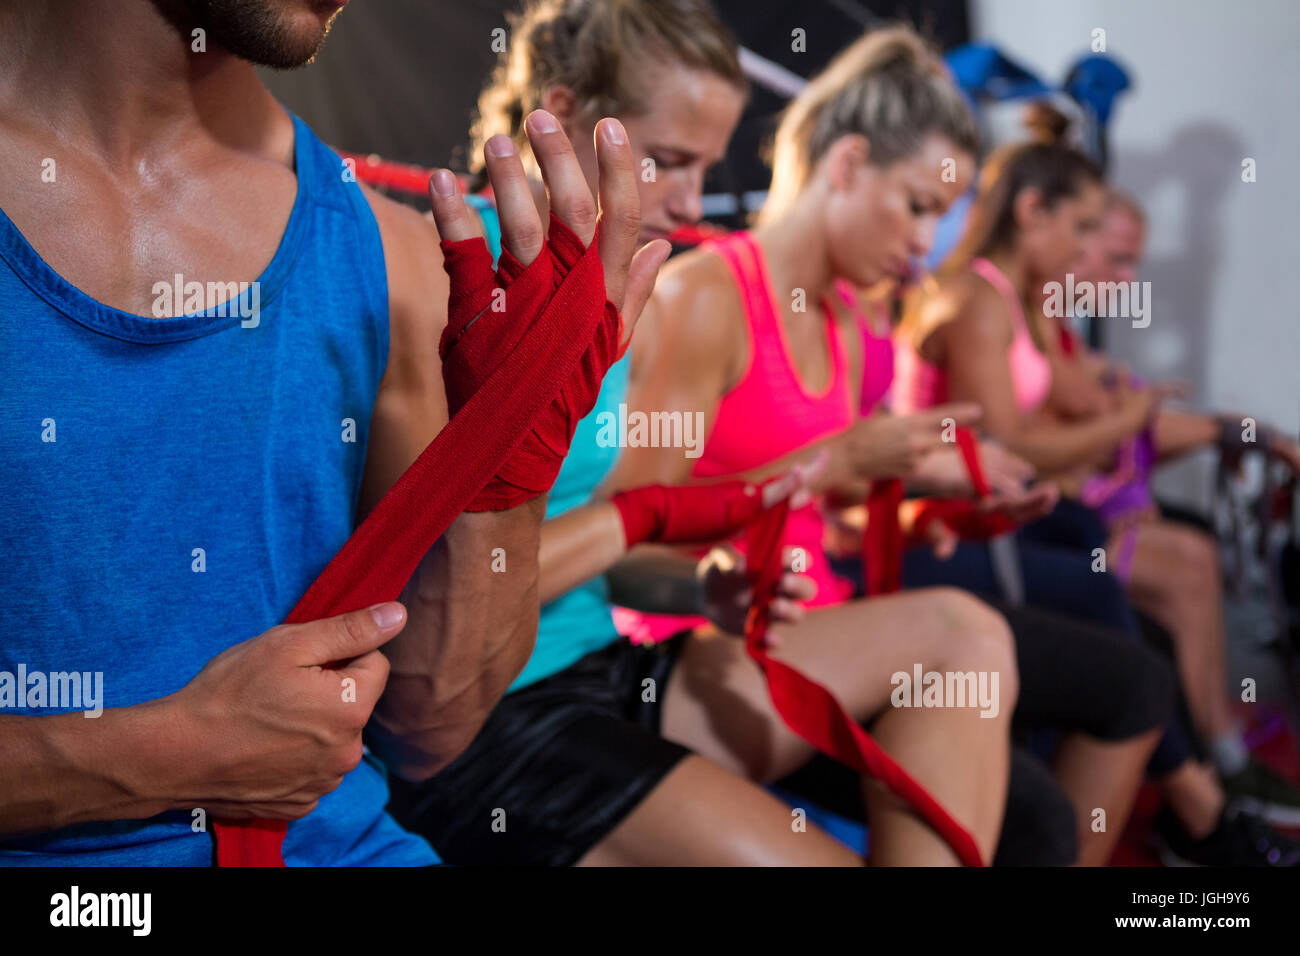 Row of athletes wrapping bandages on hands at fitness studio - Stock Image